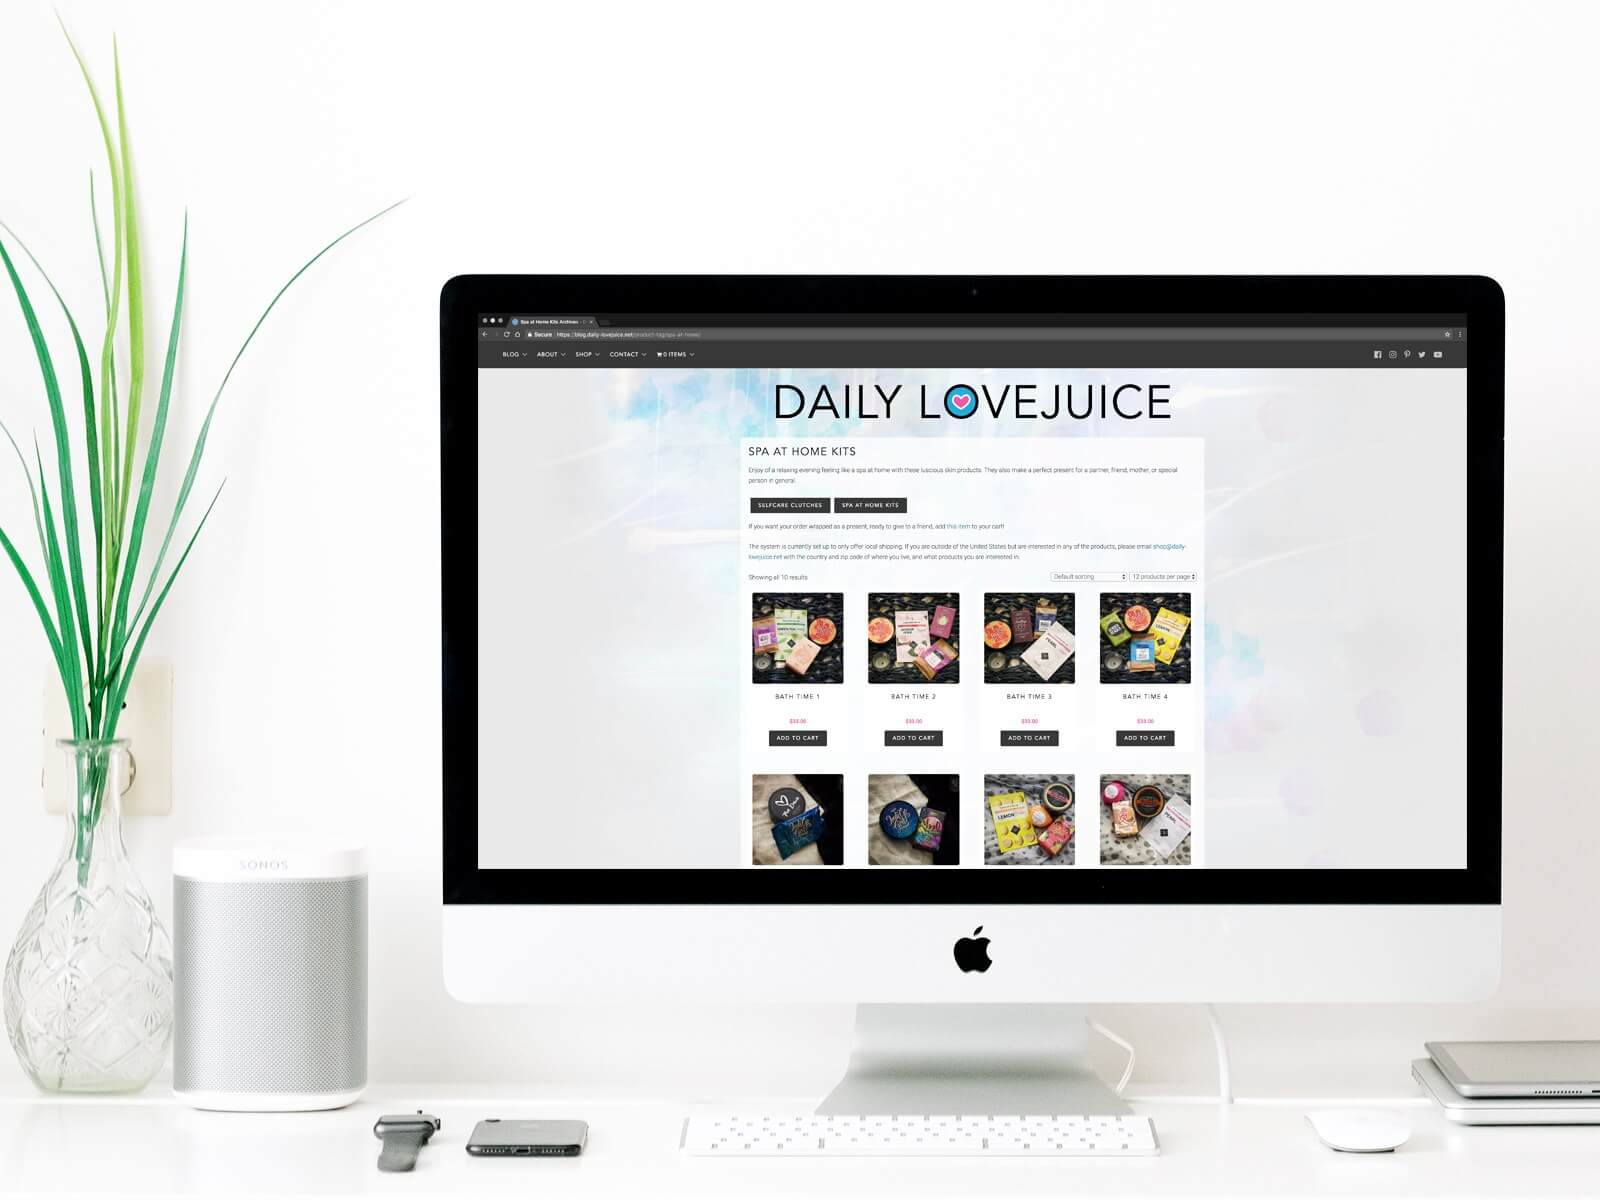 iMac on a desktop. The screen is showcasing the Daily Lovejuice website, open on their Shop page and showcasing their self care products.